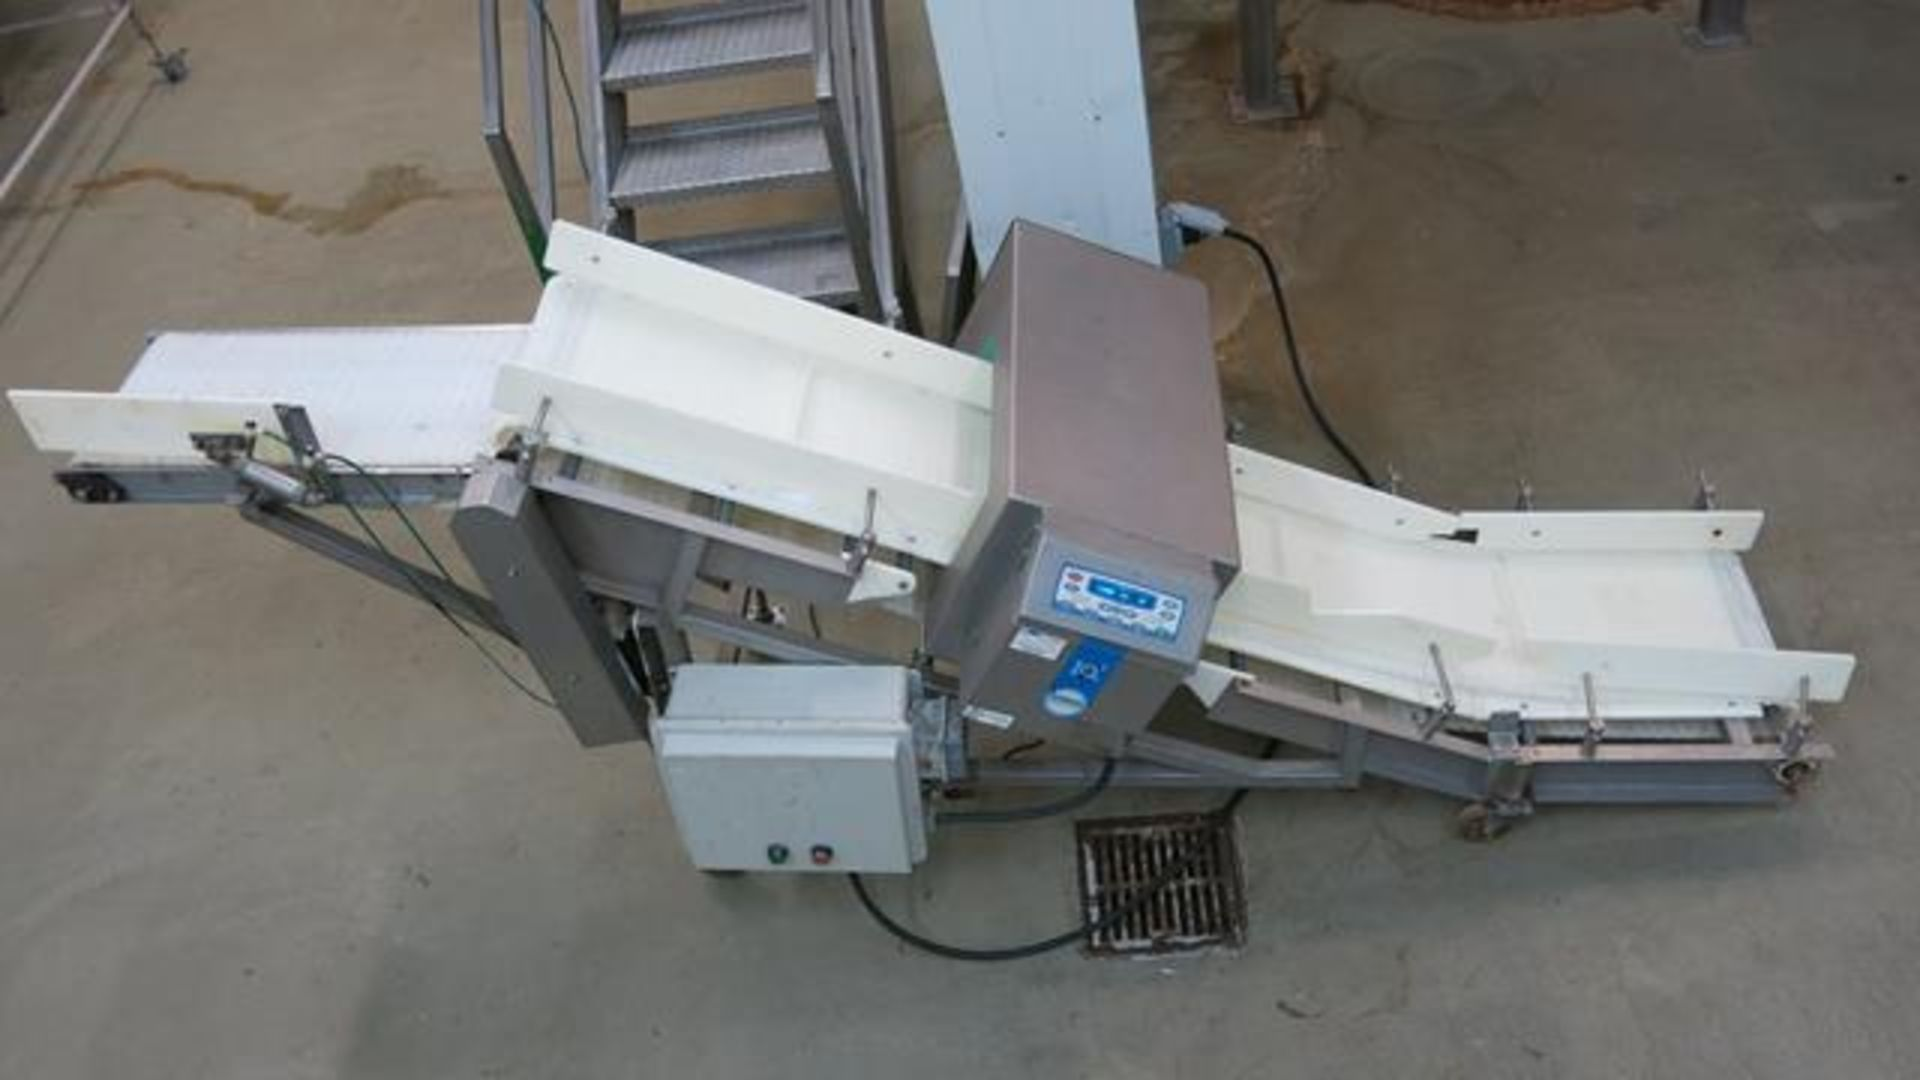 Lot 177 - LOMA, IQ2, STAINLESS STEEL, METAL DETECTOR WITH VARIABLE SPEED CONVEYOR, S/N MDQ0509-11224-61032